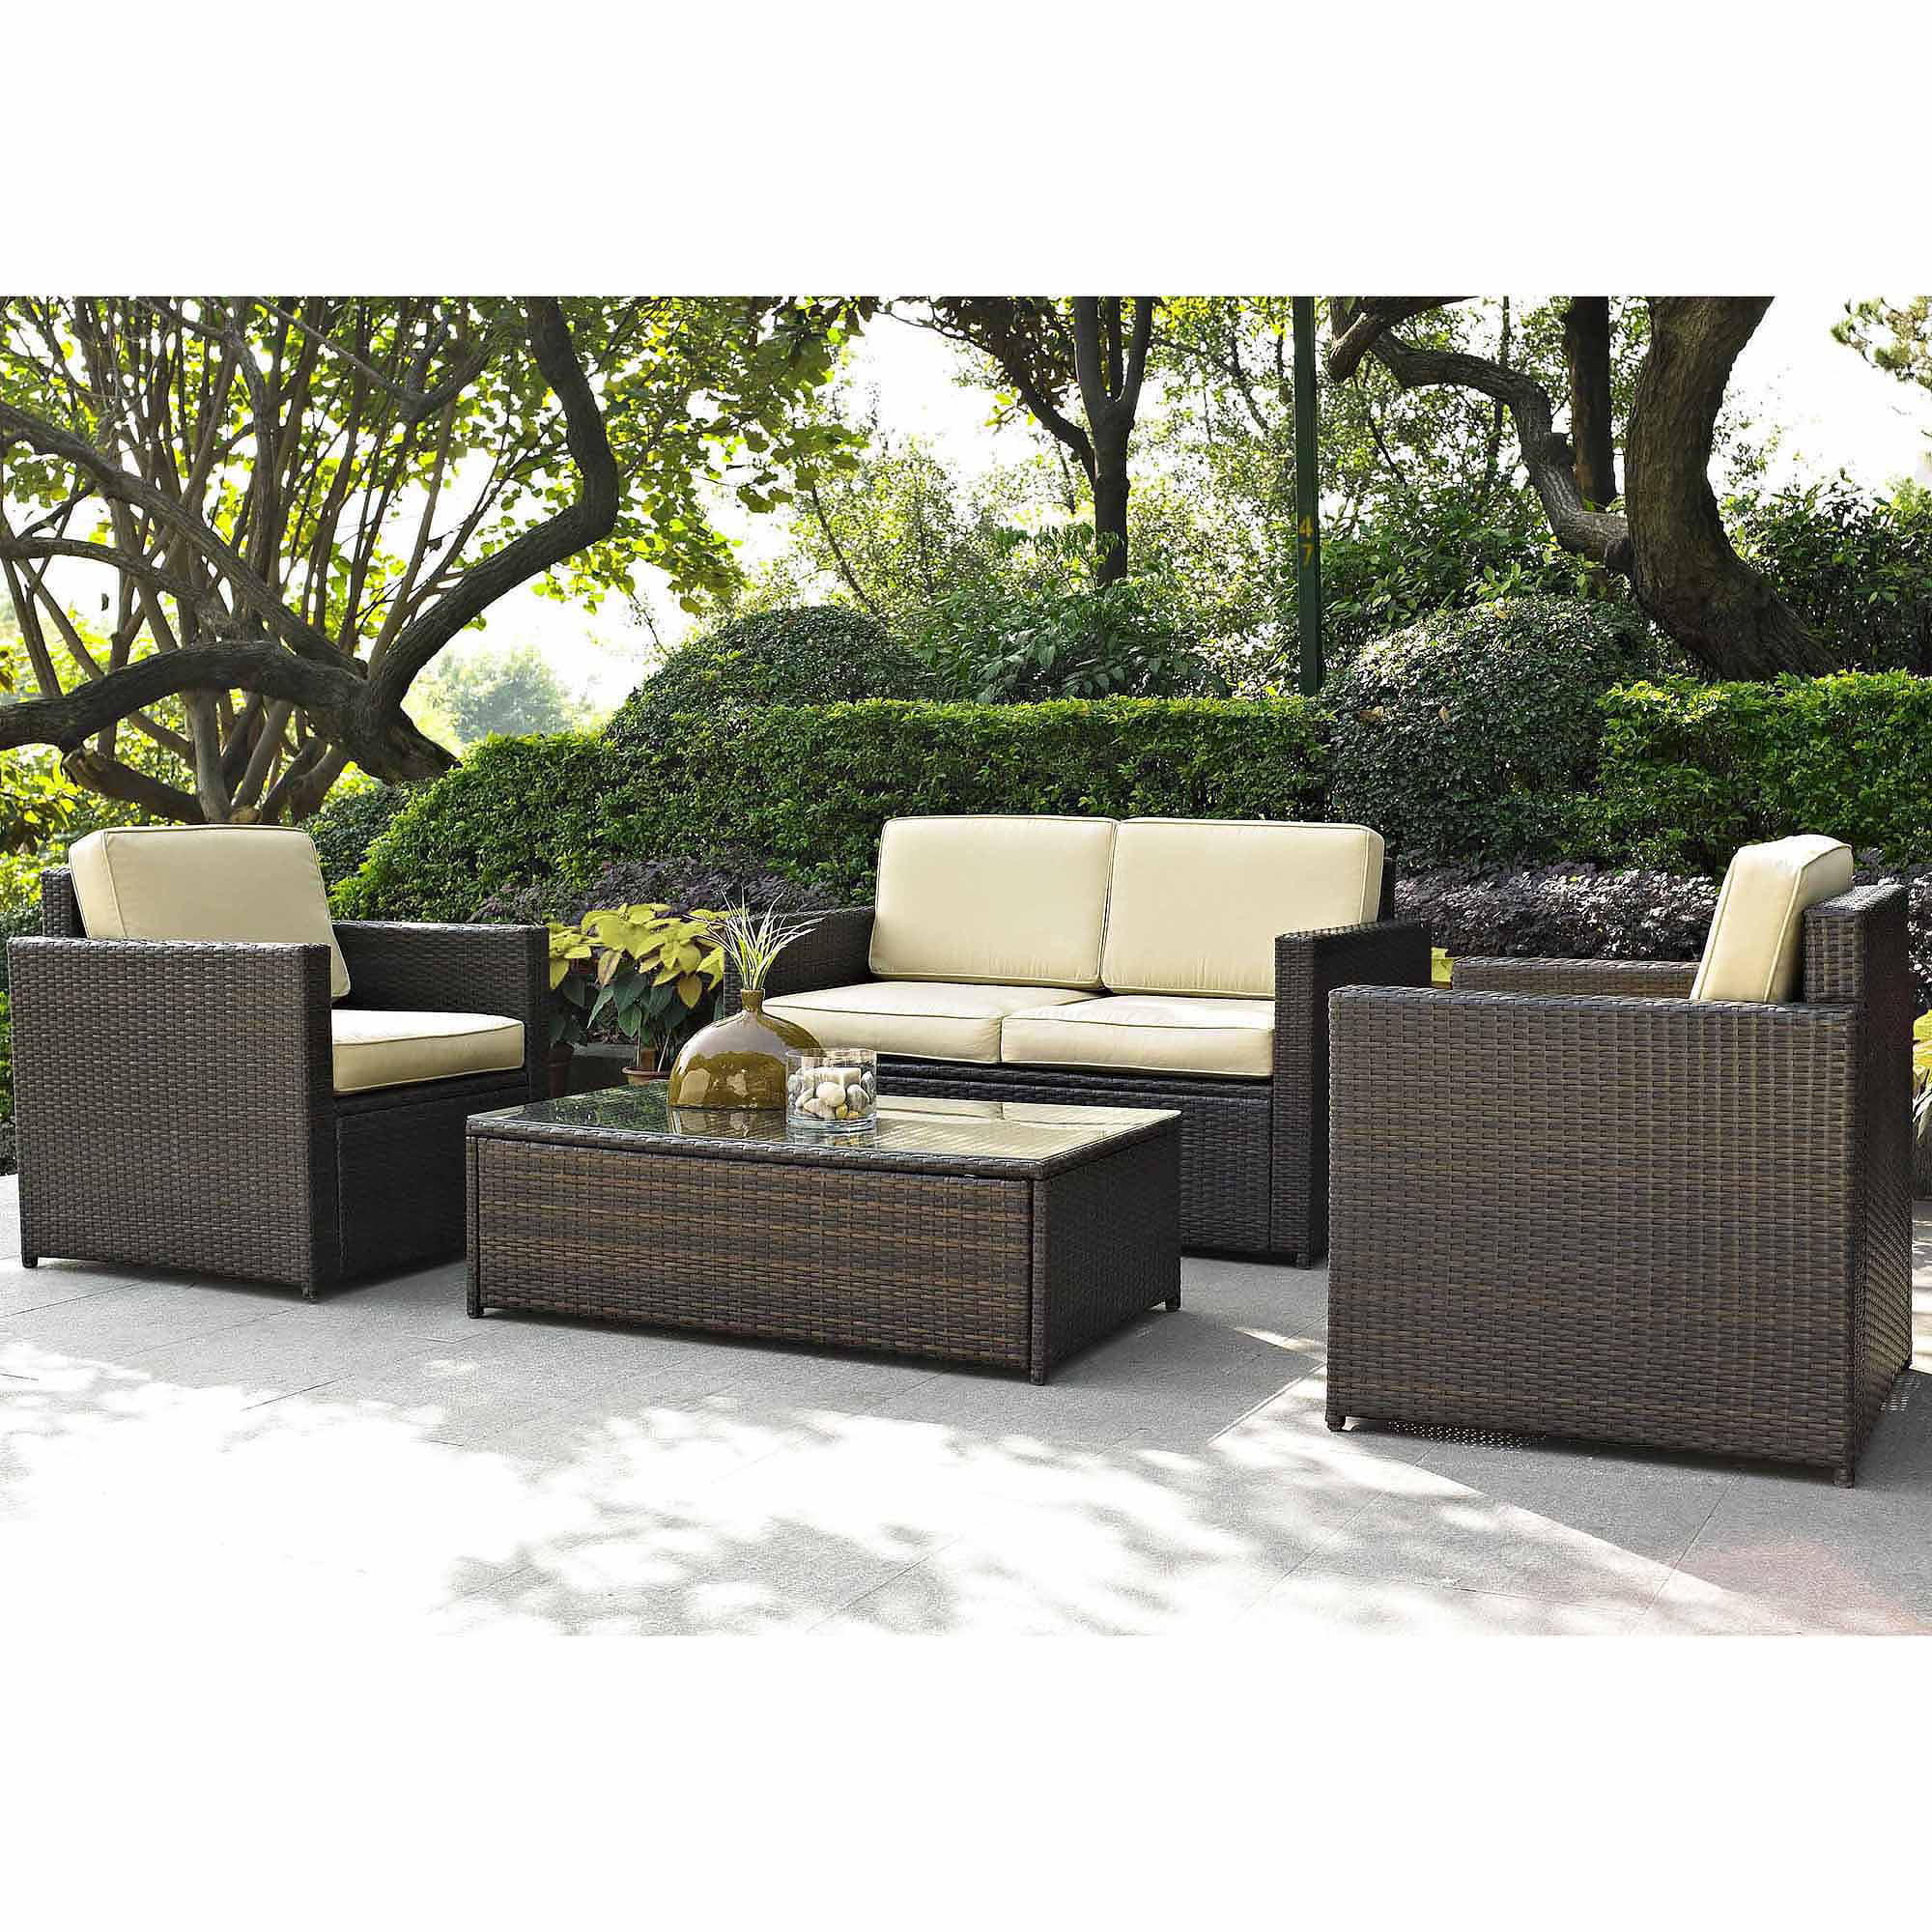 Best Choice Products Outdoor Garden Patio 4pc Cushioned Seat Black Wicker Sofa Furniture Set Com